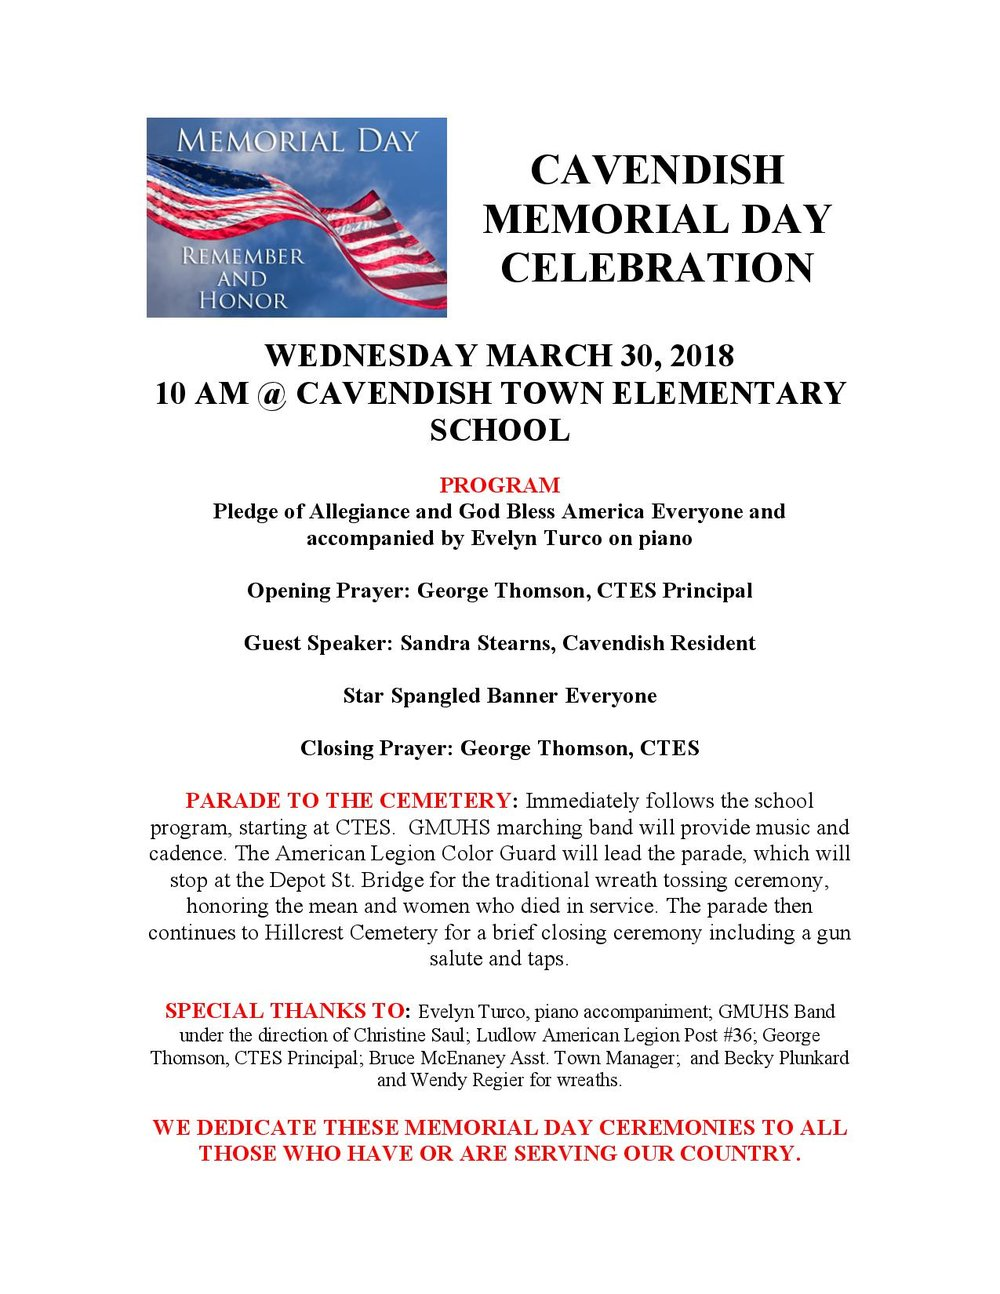 memorial Day 2018 PDF-page-001.jpg